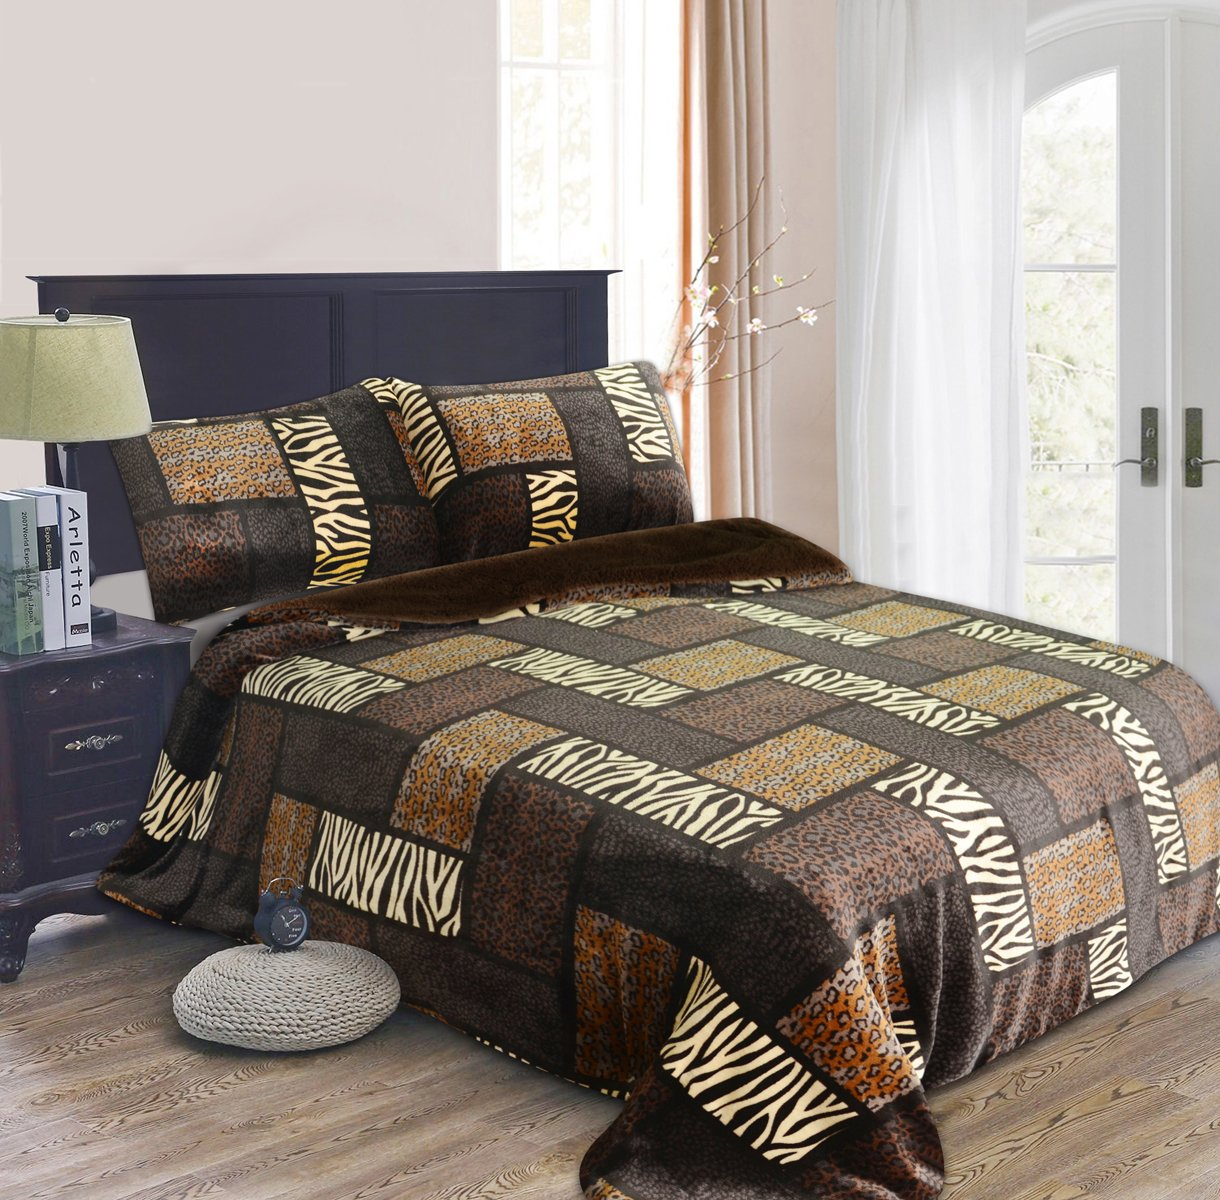 All American Collection New 3pc Borrego/ Sherpa Blanket Queen/ King Size Animal Print